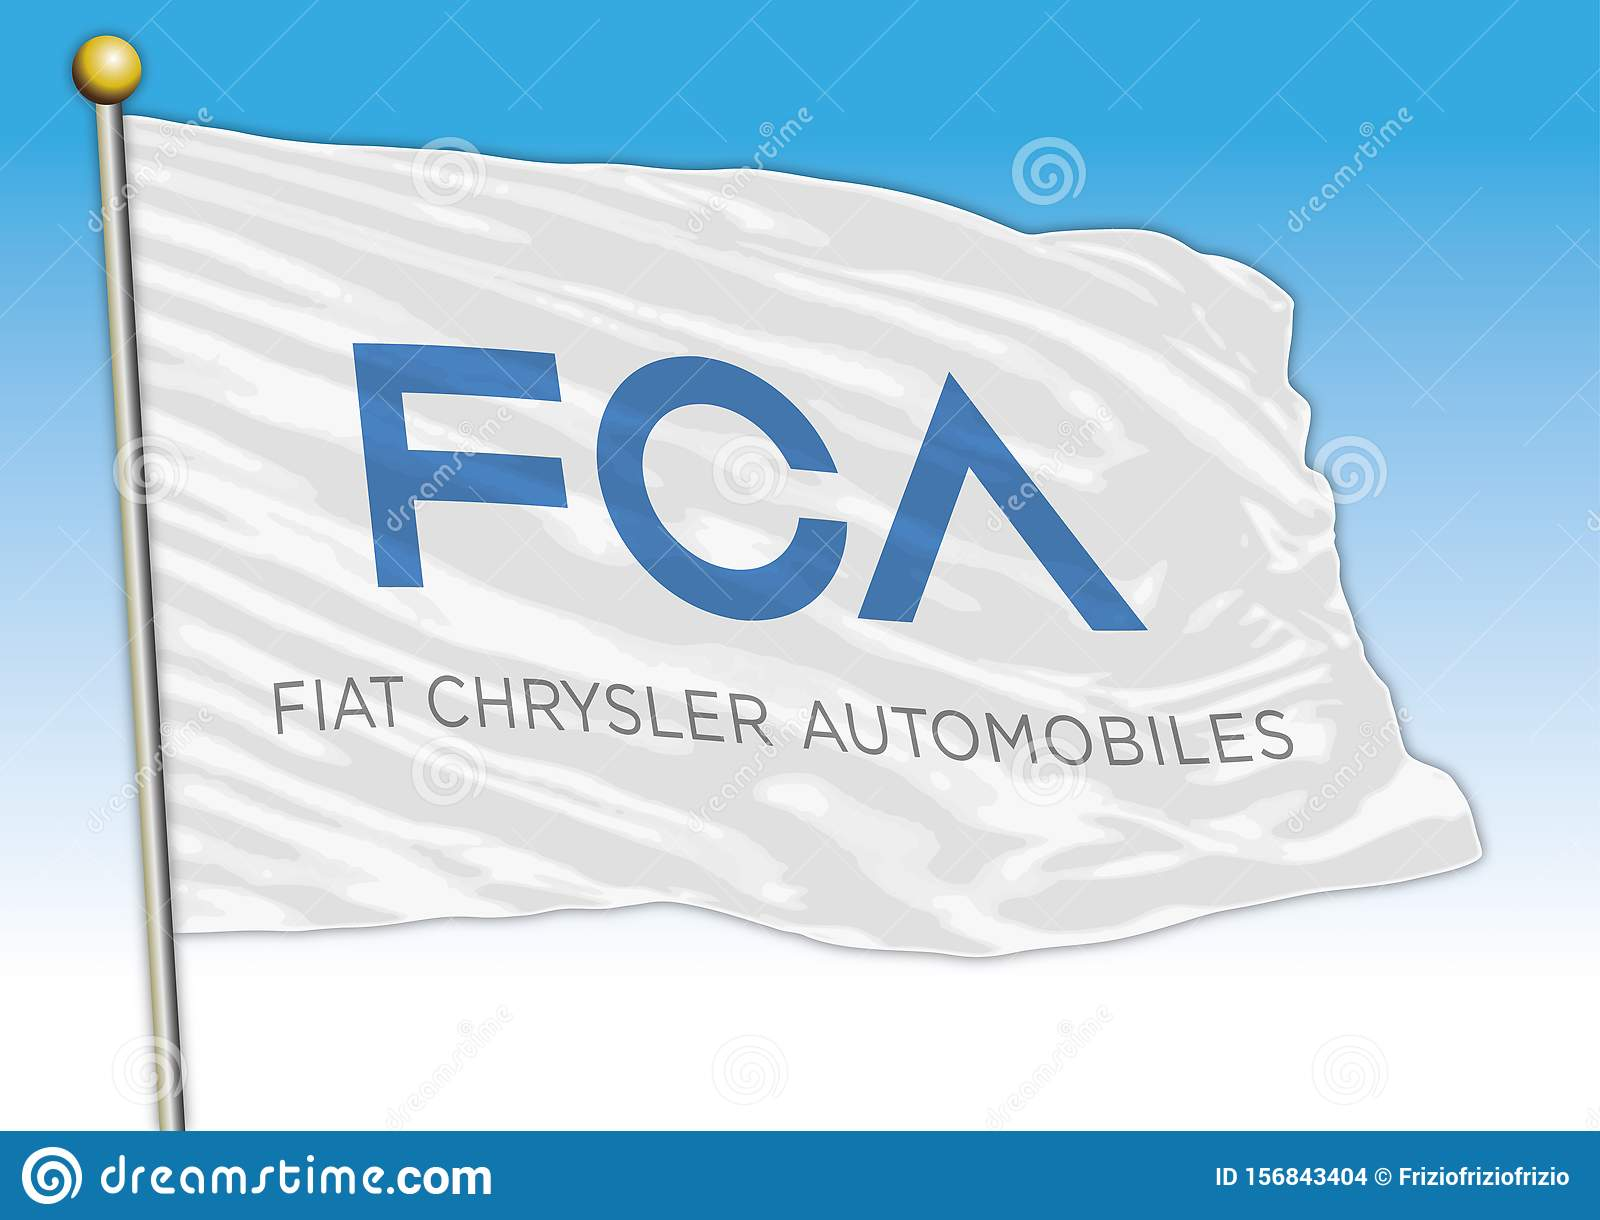 FCA Fiat Chrysler cars international group, flags with logo, illustration